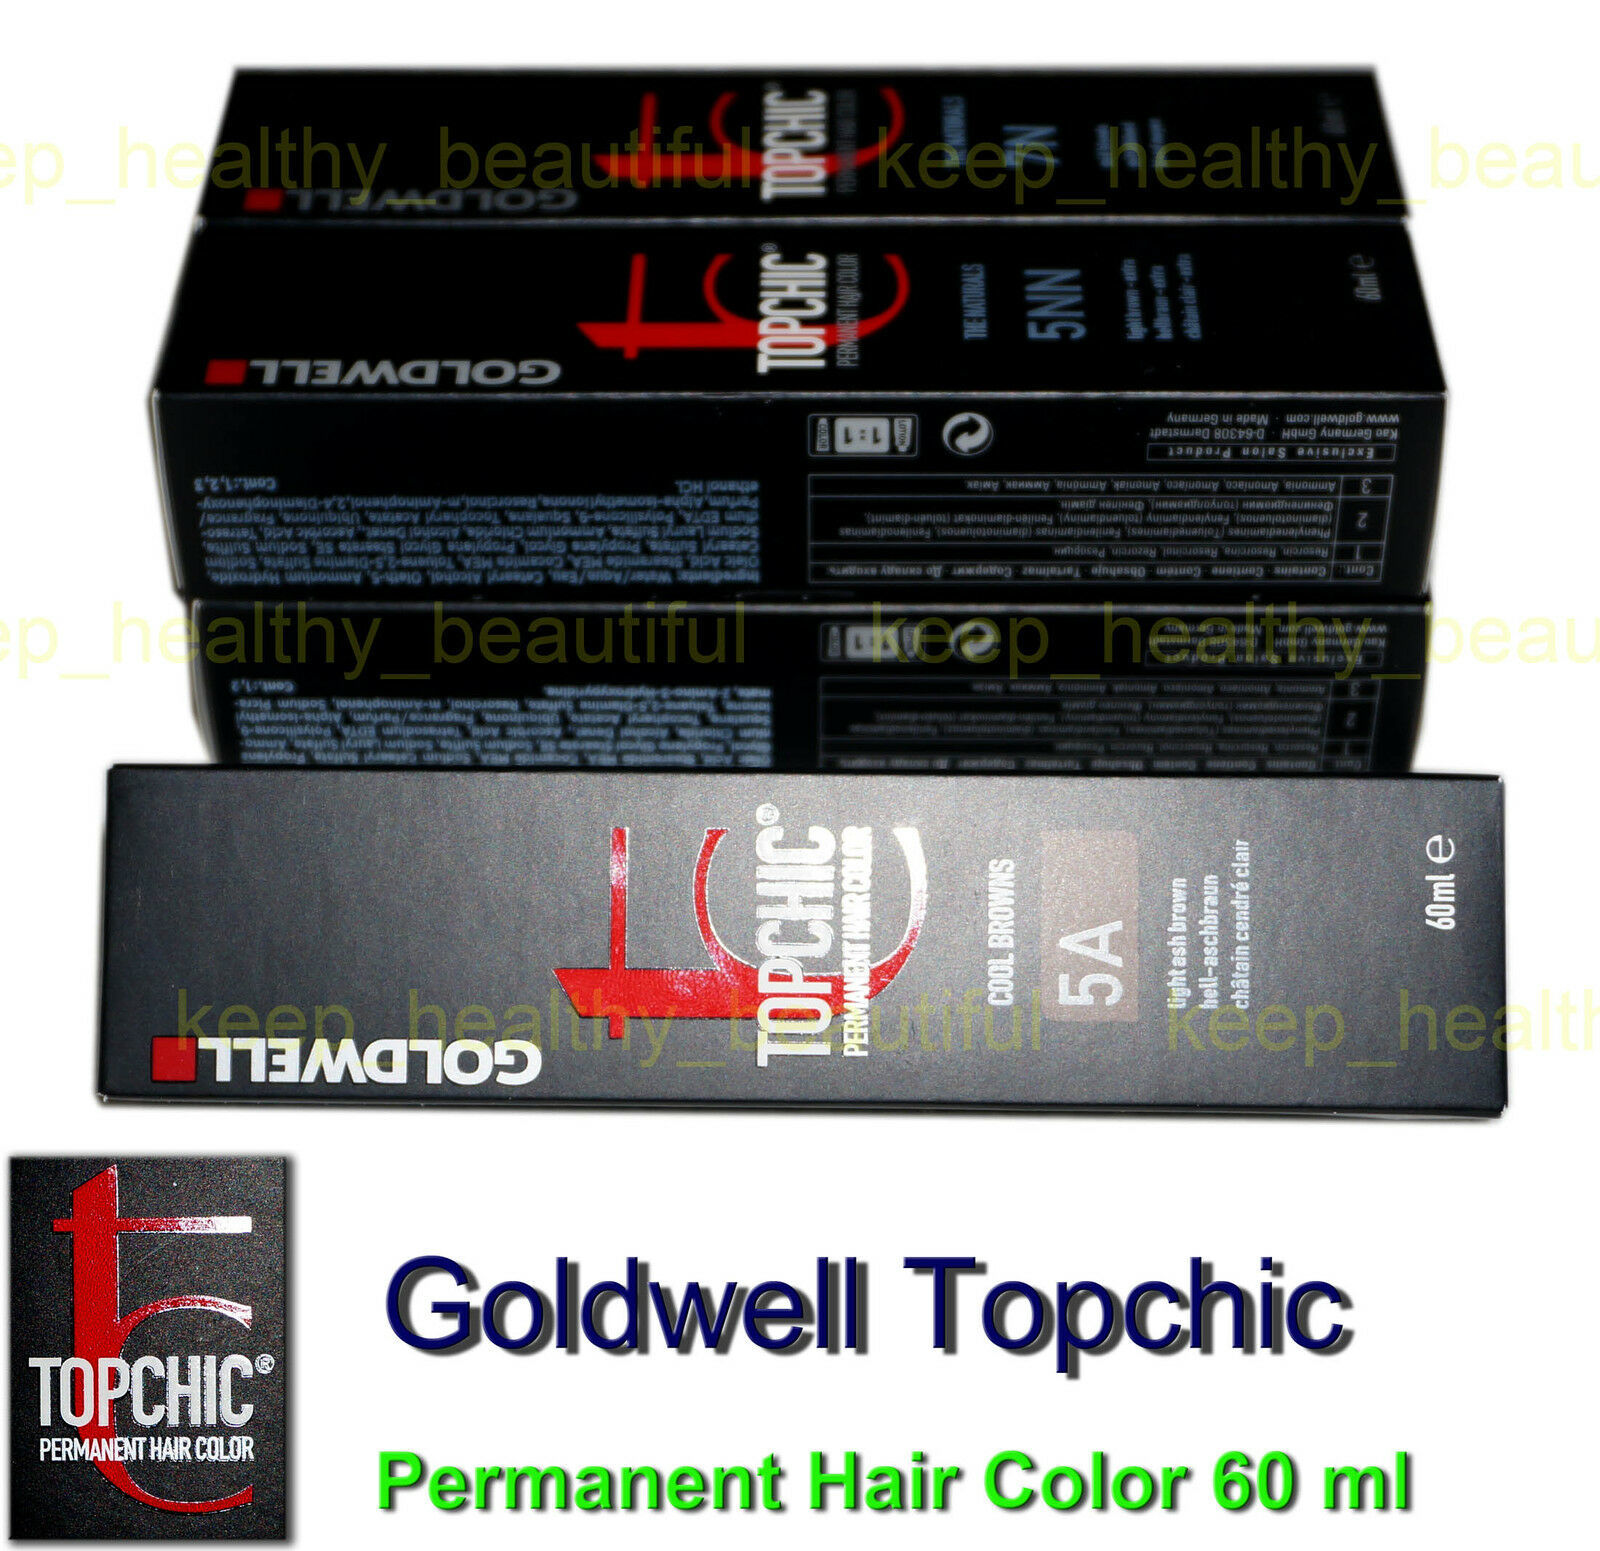 1x Goldwell Topchic Permanent Hair Color 60 ml Registered post - $7.90